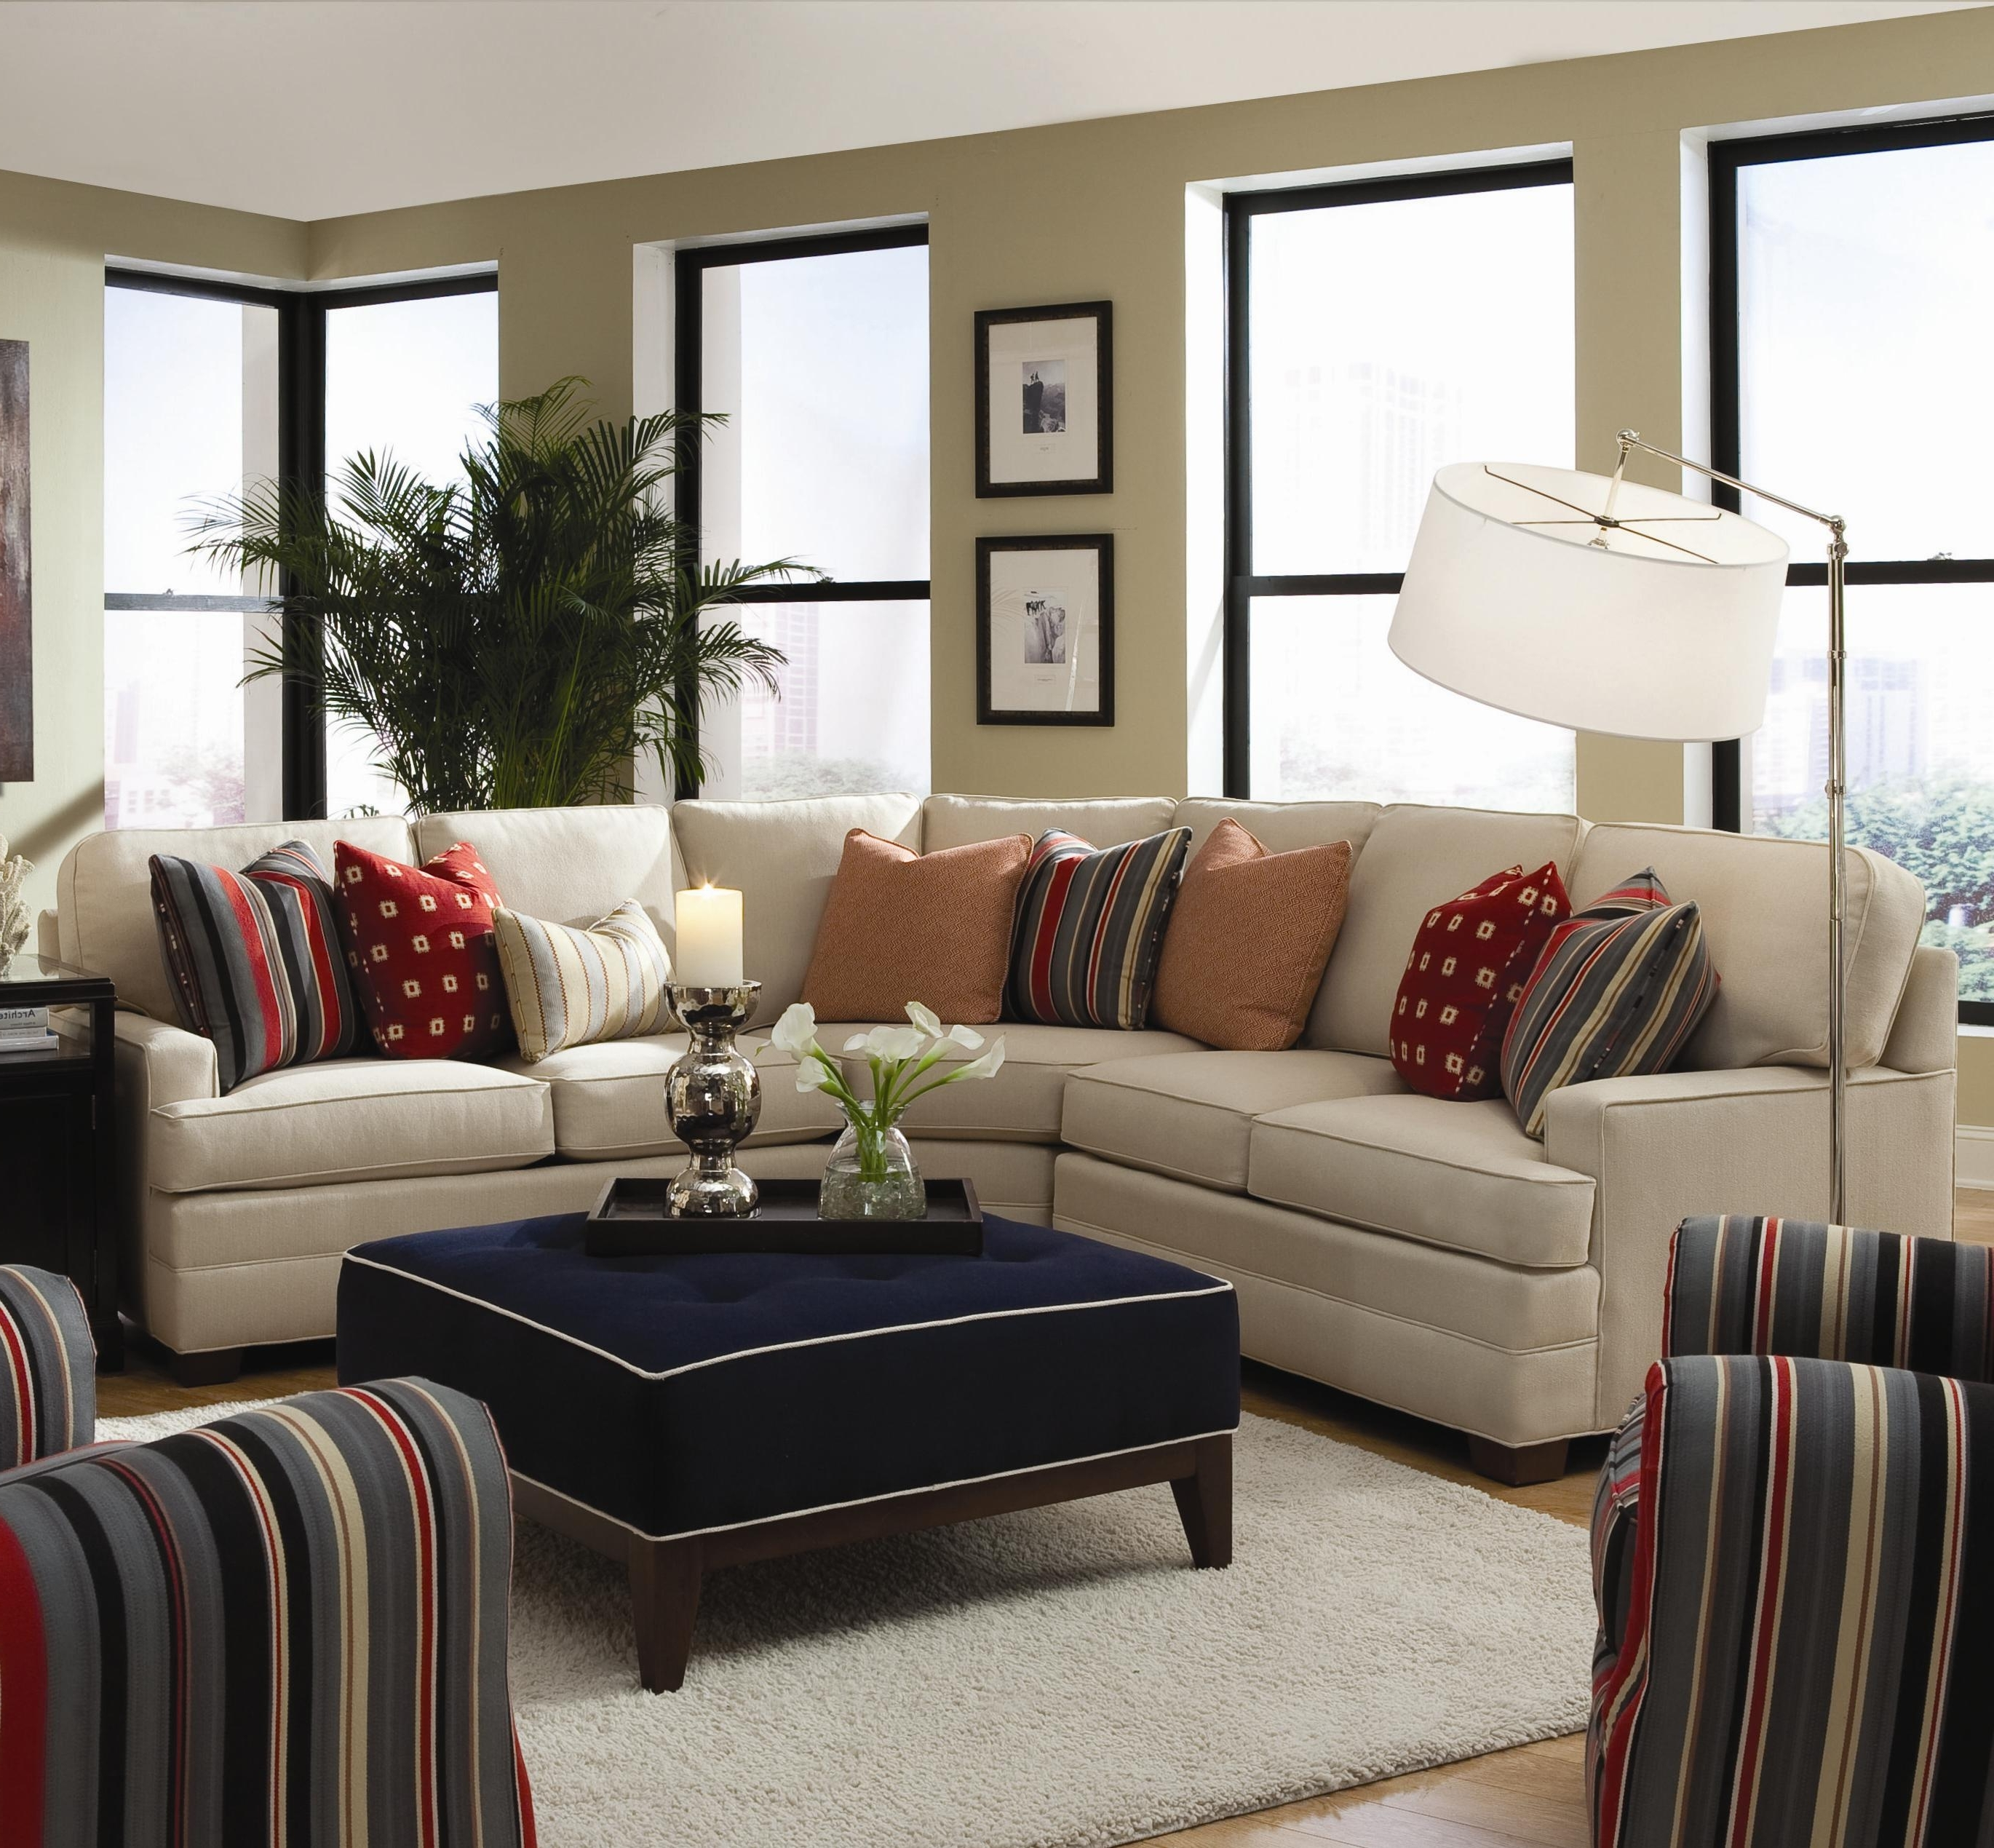 Virginia Sectional Sofas For Best And Newest Dellinger 3 Piece Sectional Sofahuntington House (View 12 of 20)